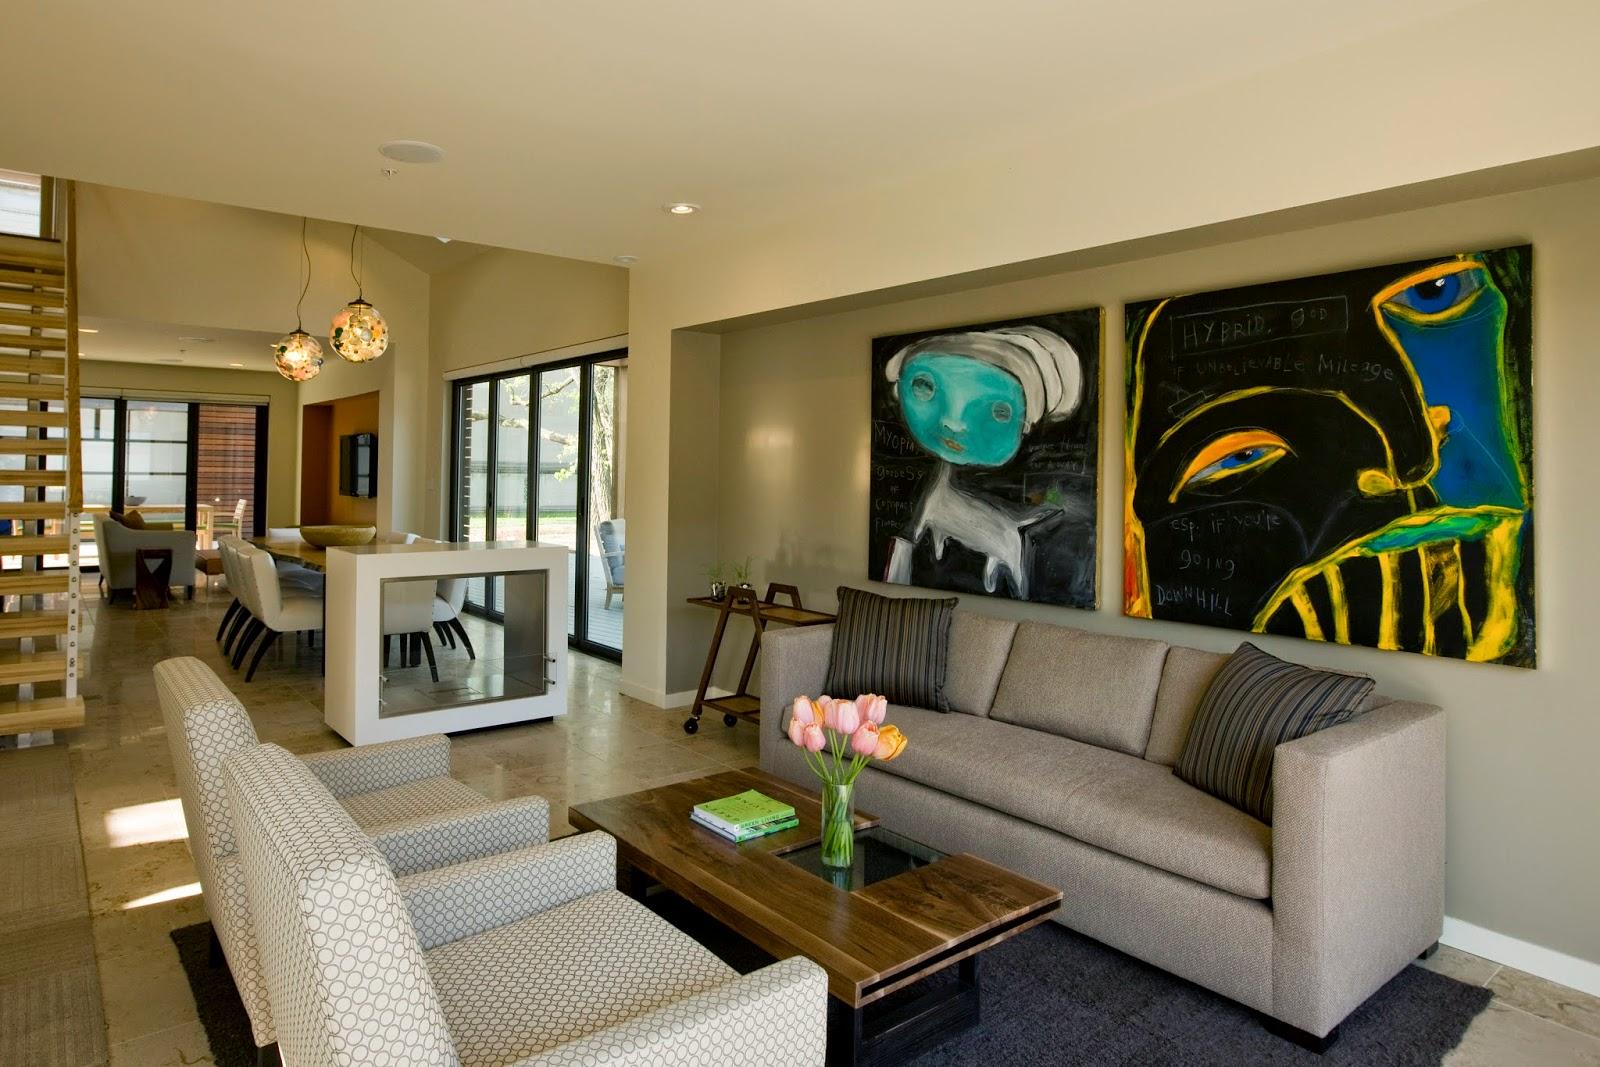 Ideas Designs on How to Decorate a Living Room - A Room For Everyone